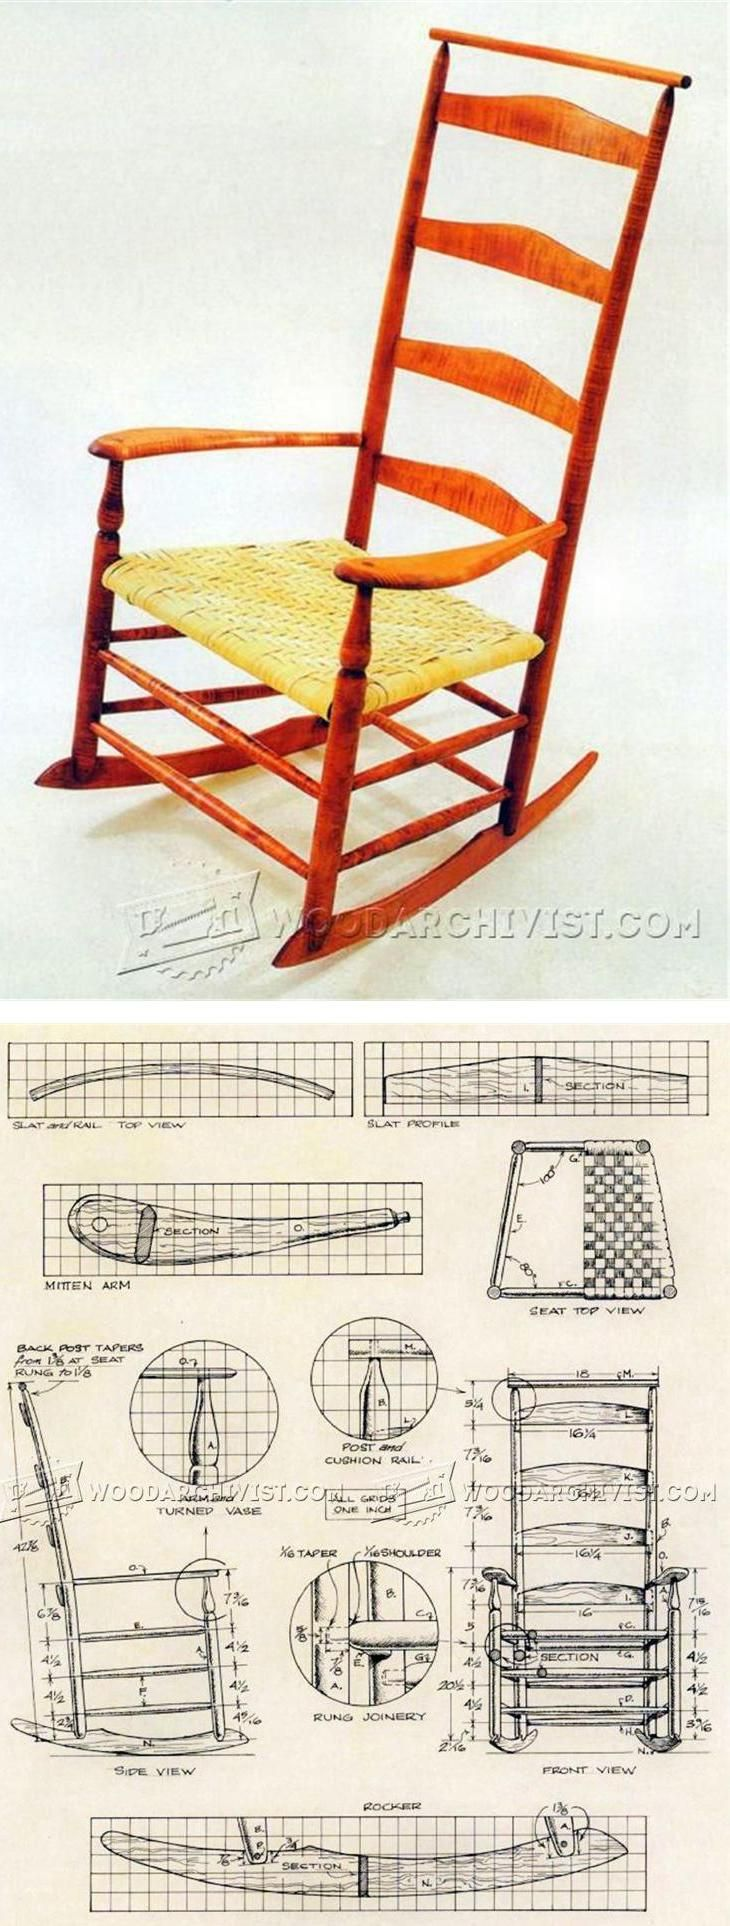 shaker rocking chair plans furniture plans and projects rh pinterest com